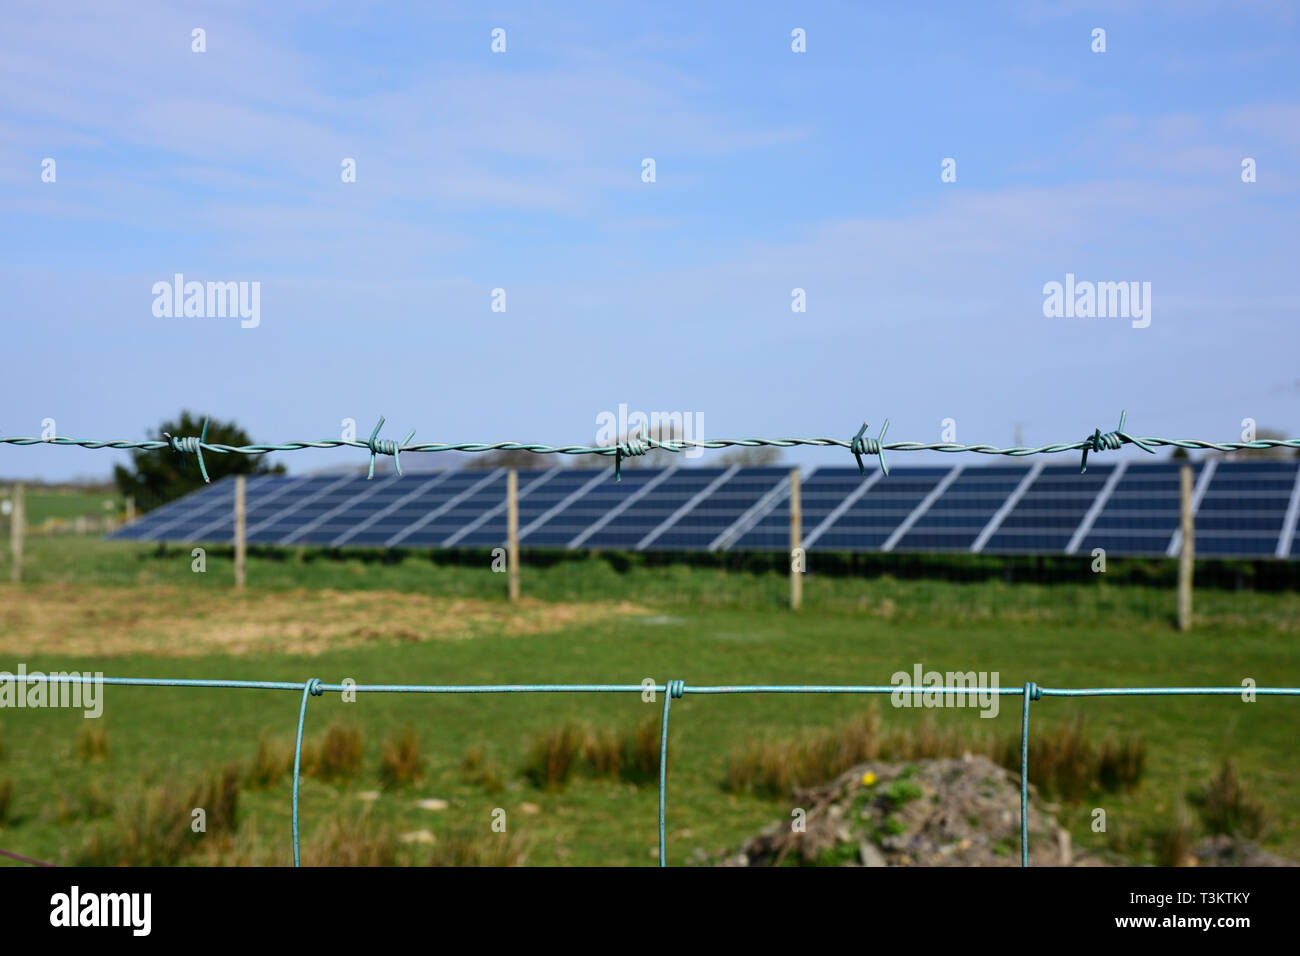 Barbed wire fence in front of out of focus solar array - Stock Image